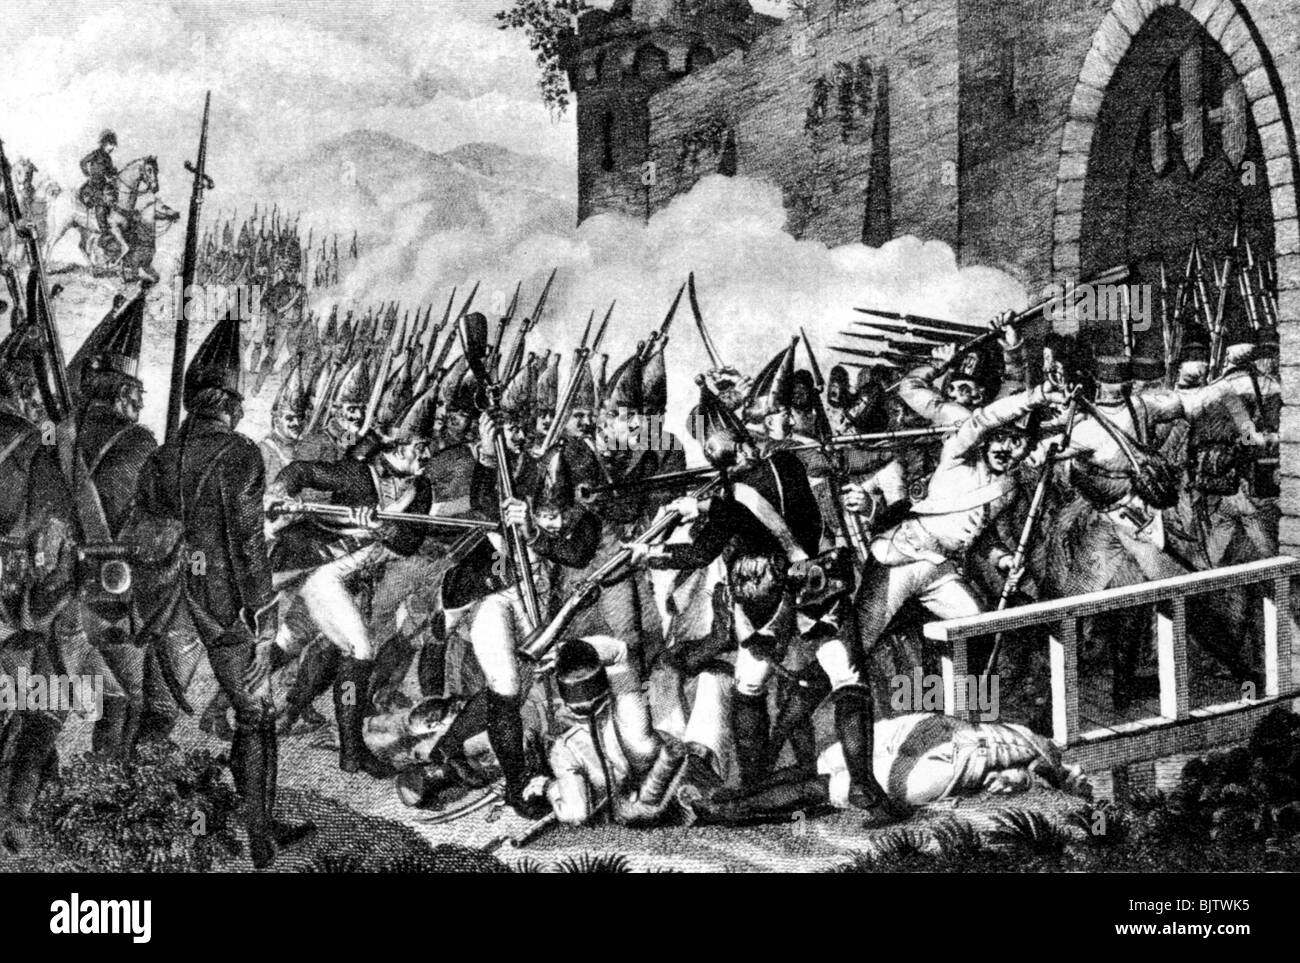 events, Seven Years War 1756 - 1763, Battle of Lobositz, 1.10.1756,  Prussian grenadiers storming the city gate, wood engraving, 19th century,  military, ...